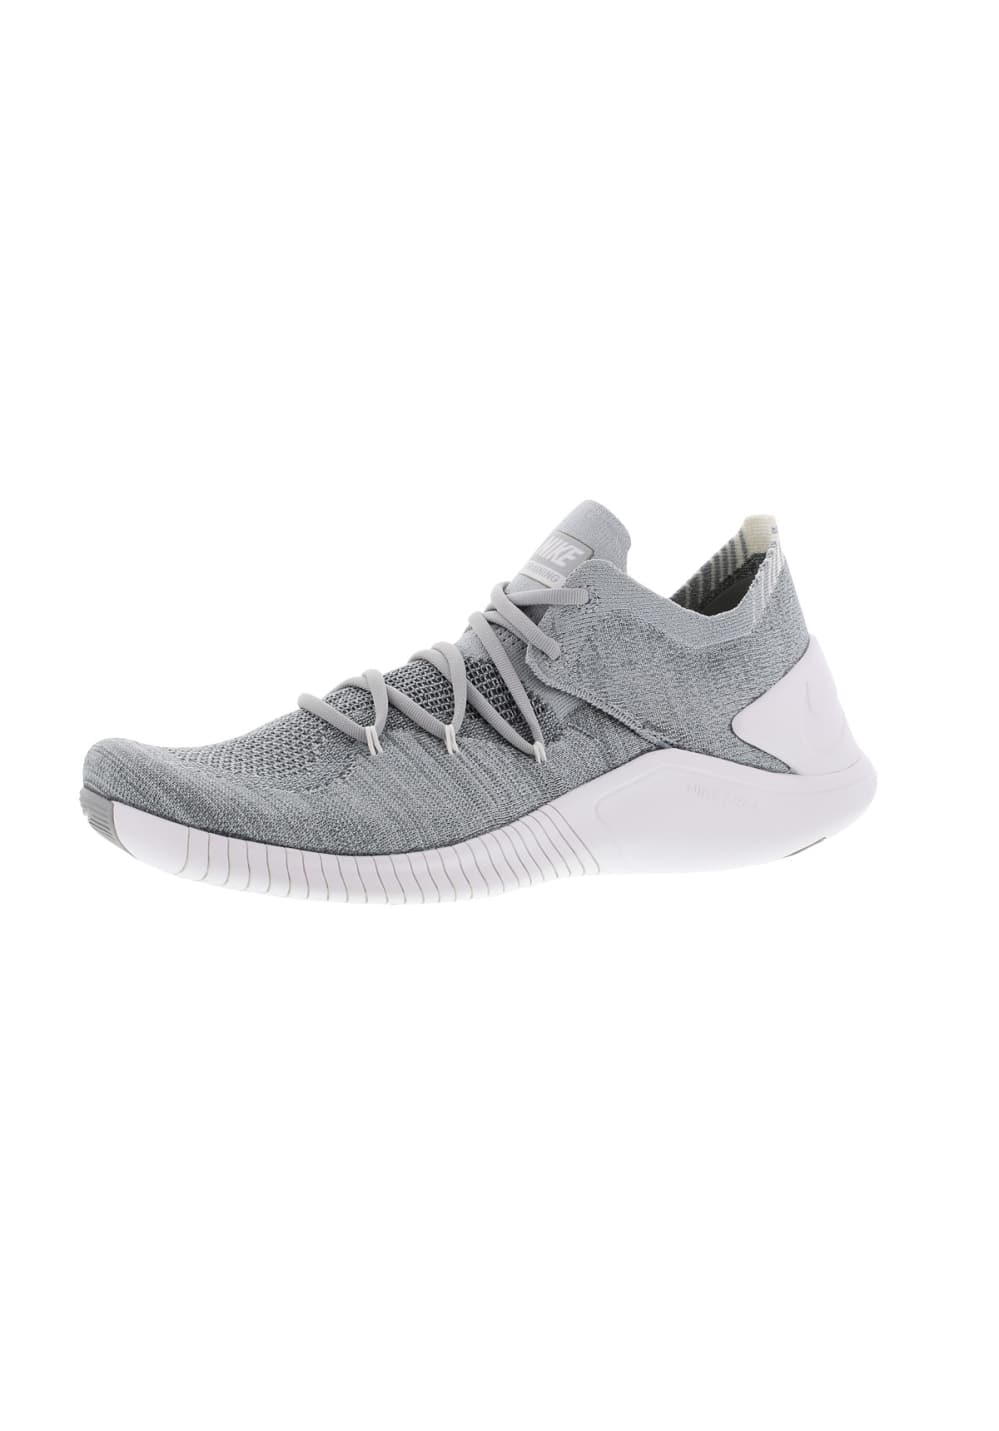 grande vente ab021 e195d Nike Free Trainer Flyknit 3 - Chaussures fitness pour Femme - Gris